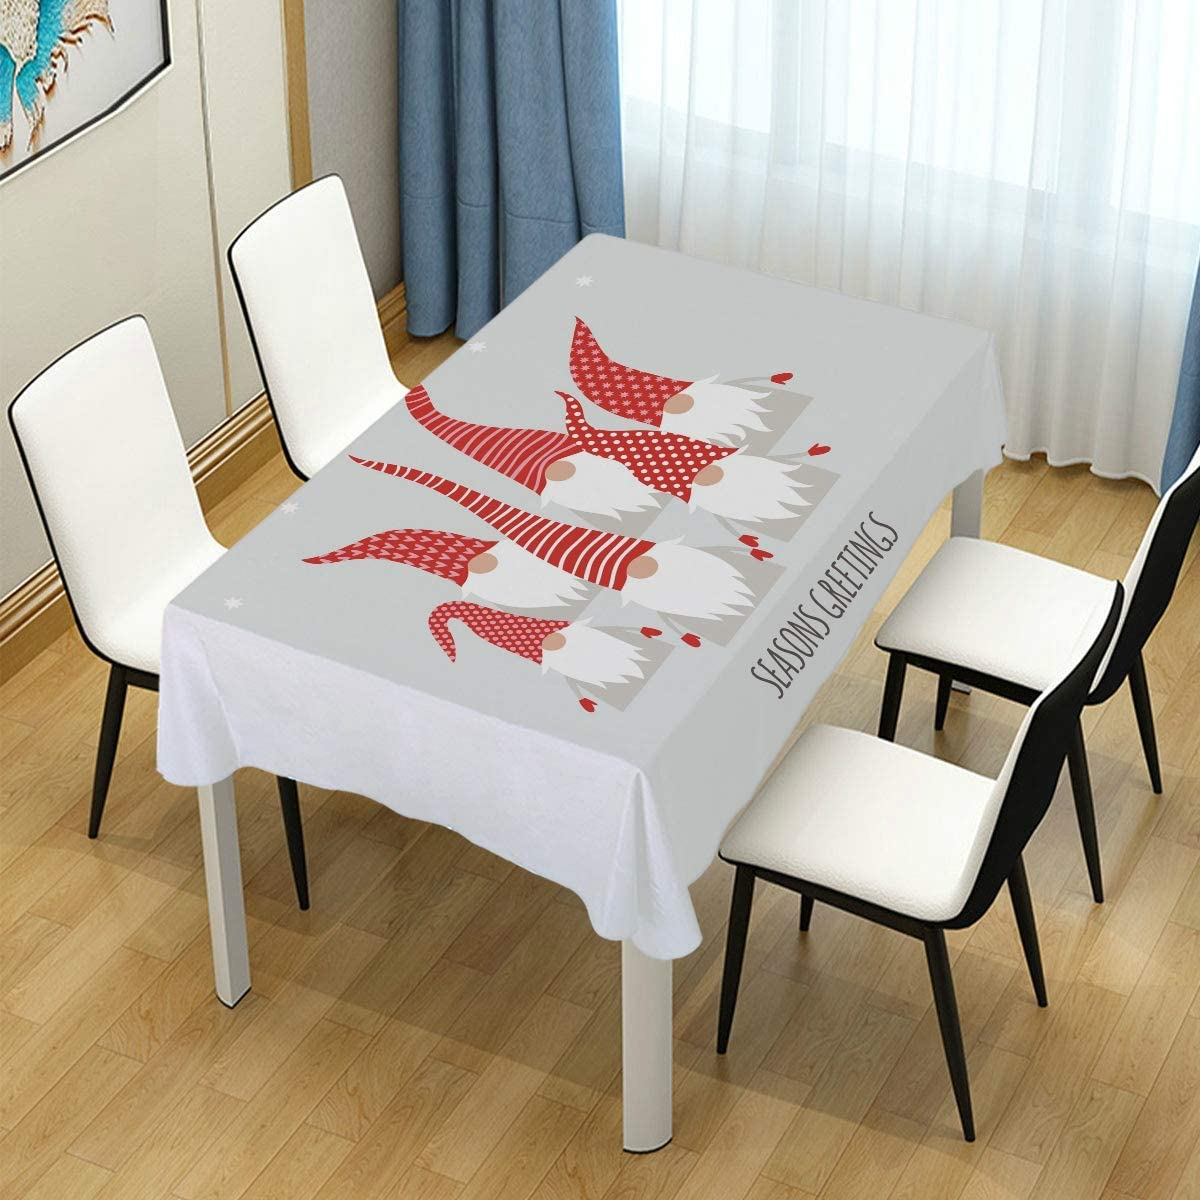 AGONA Rectangle Tablecloth 送料無料 Christmas Cute Little 評価 Gnomes Tableclo